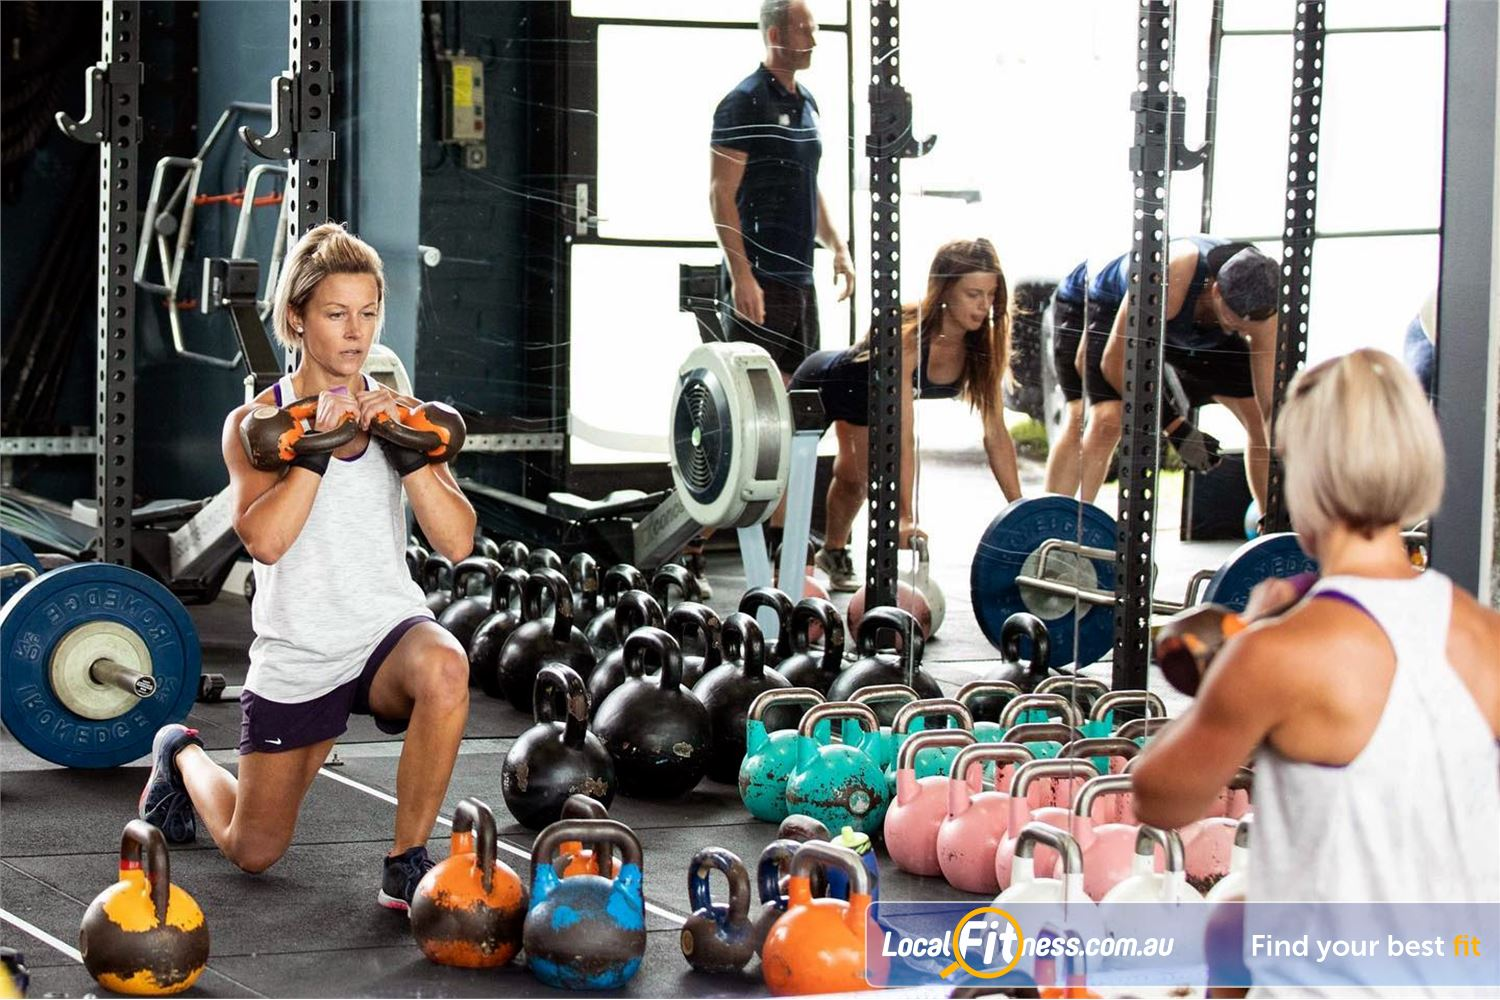 KettleFit Near St Kilda Our HIIT classes focus on improving your functional fitness.